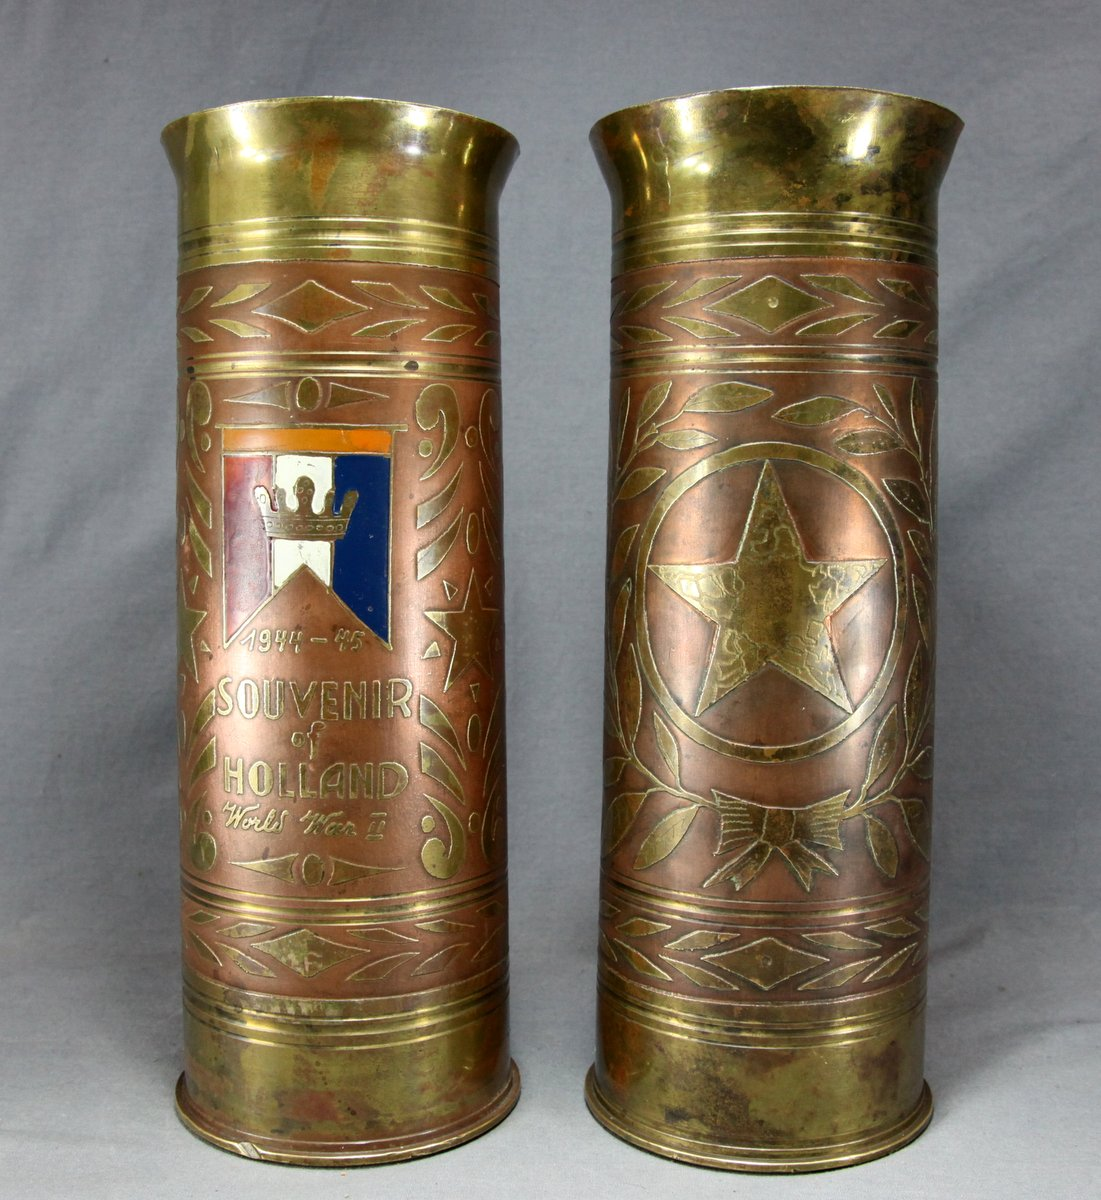 Trench Art Artillery Shells